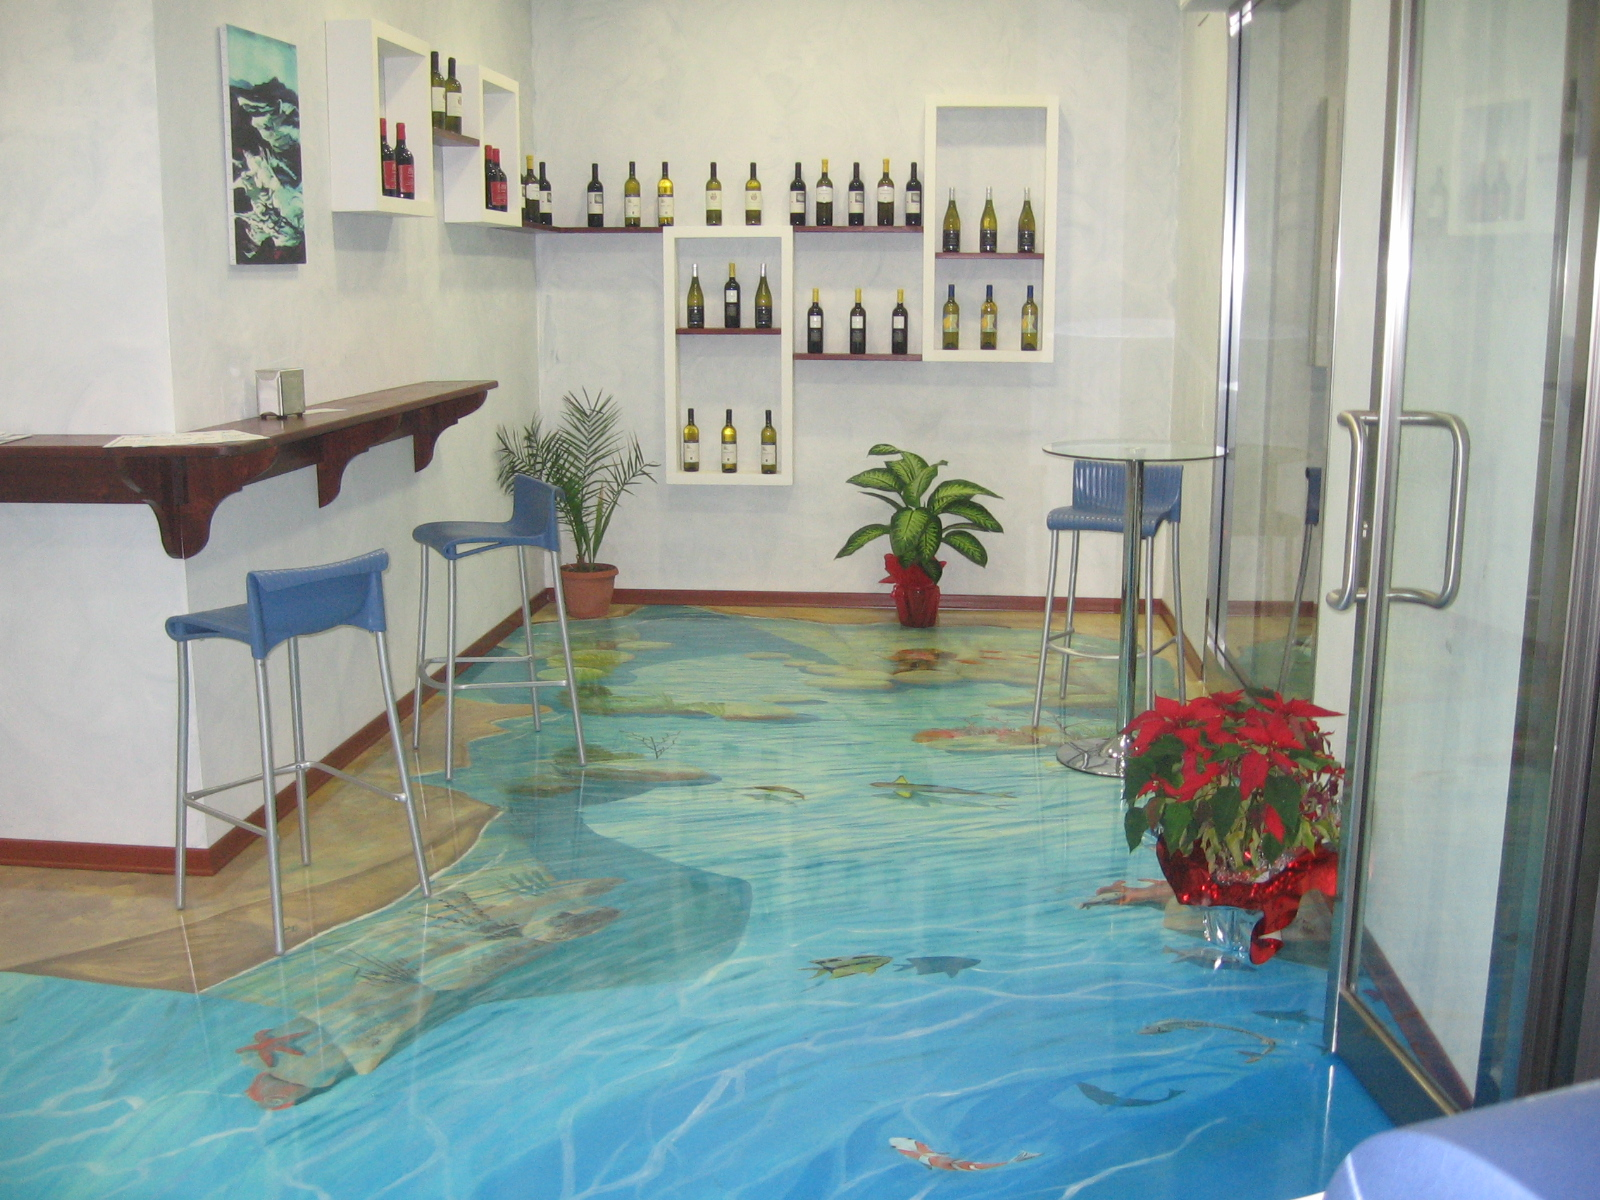 Epoxy Kitchen Flooring Turn Any Room Into A Stunning Work Of Art With 3d Epoxy Flooring